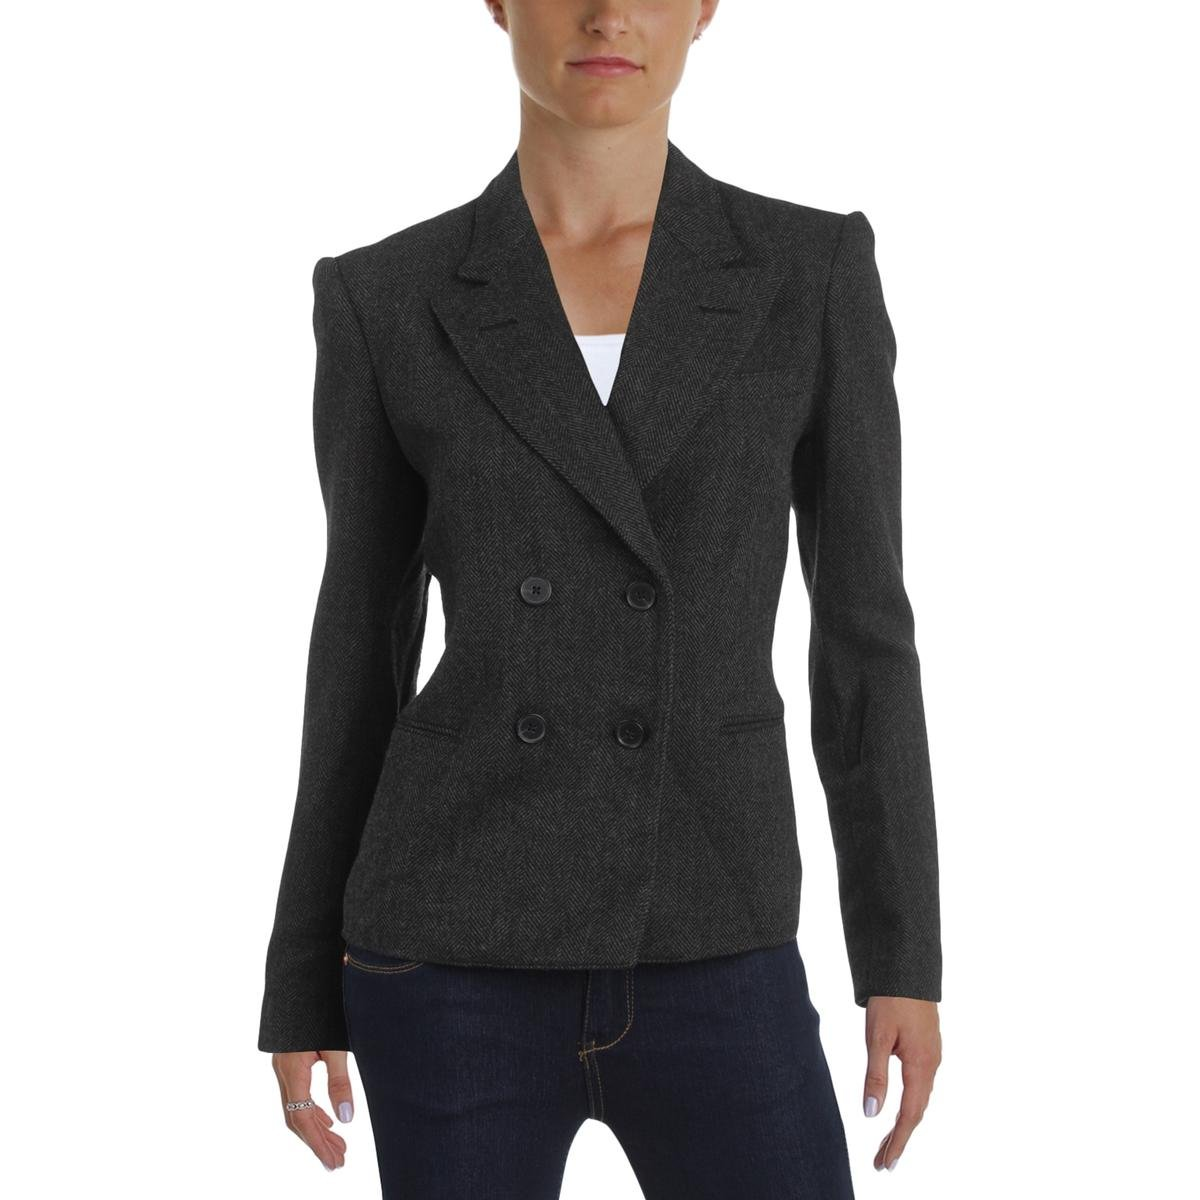 Polo Ralph Lauren Womens Double Breasted Wool Two-Button Blazer Black 6 by Polo Ralph Lauren